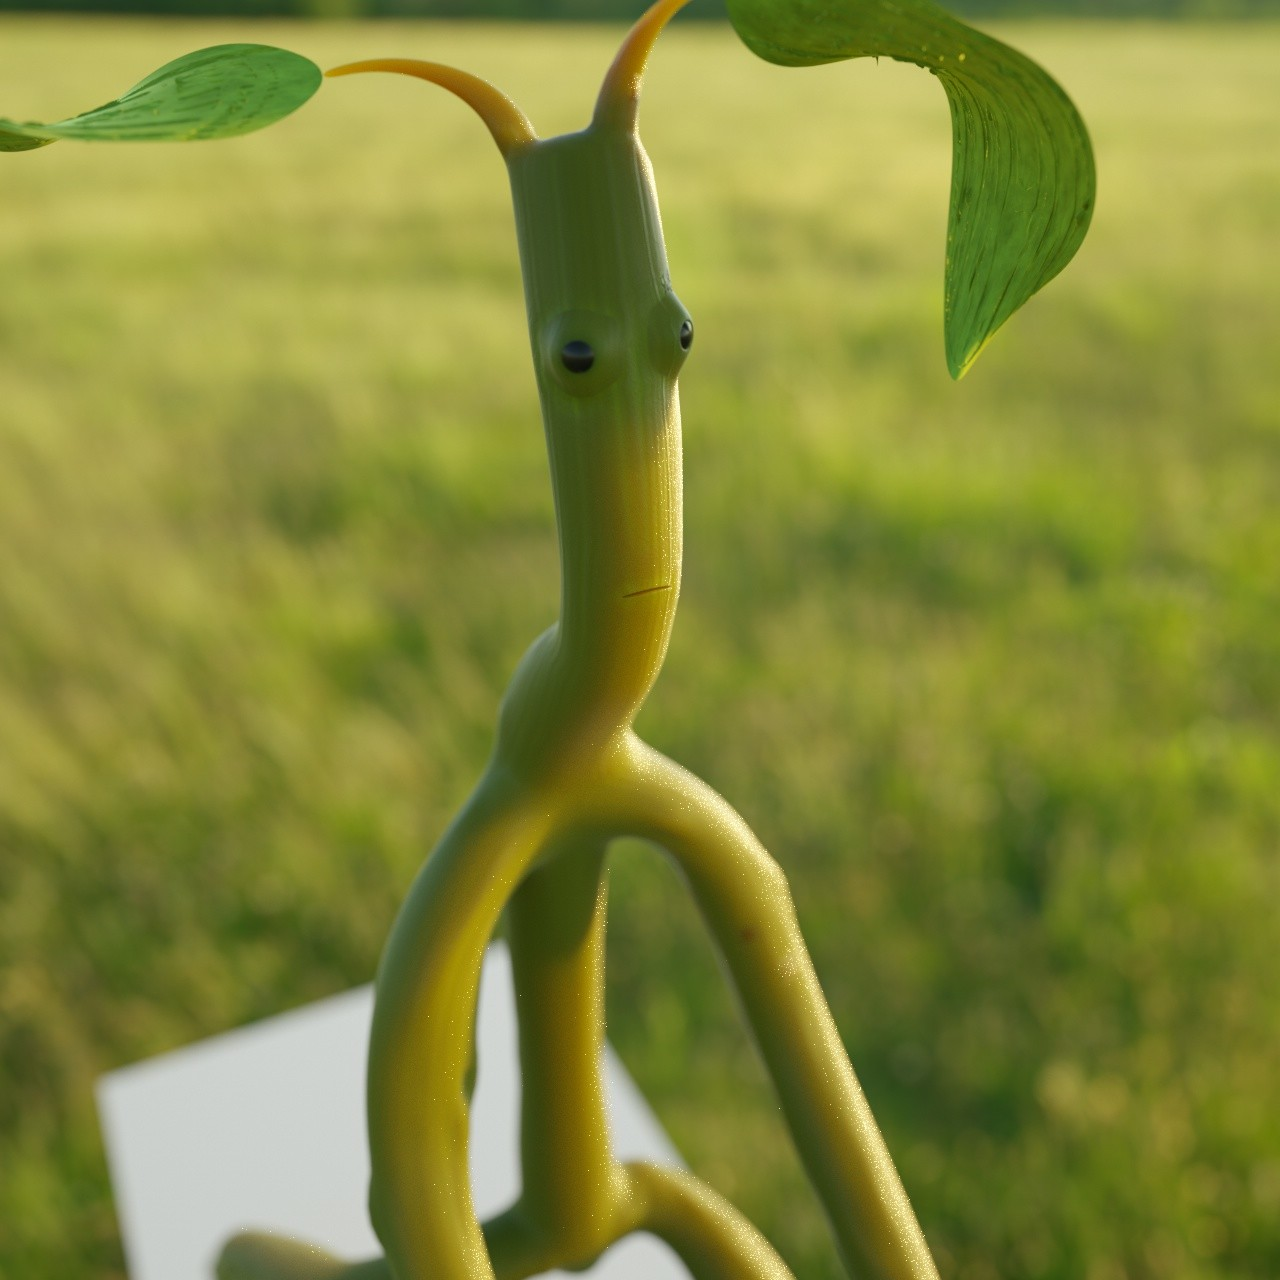 Chris kessler bowtruckle2